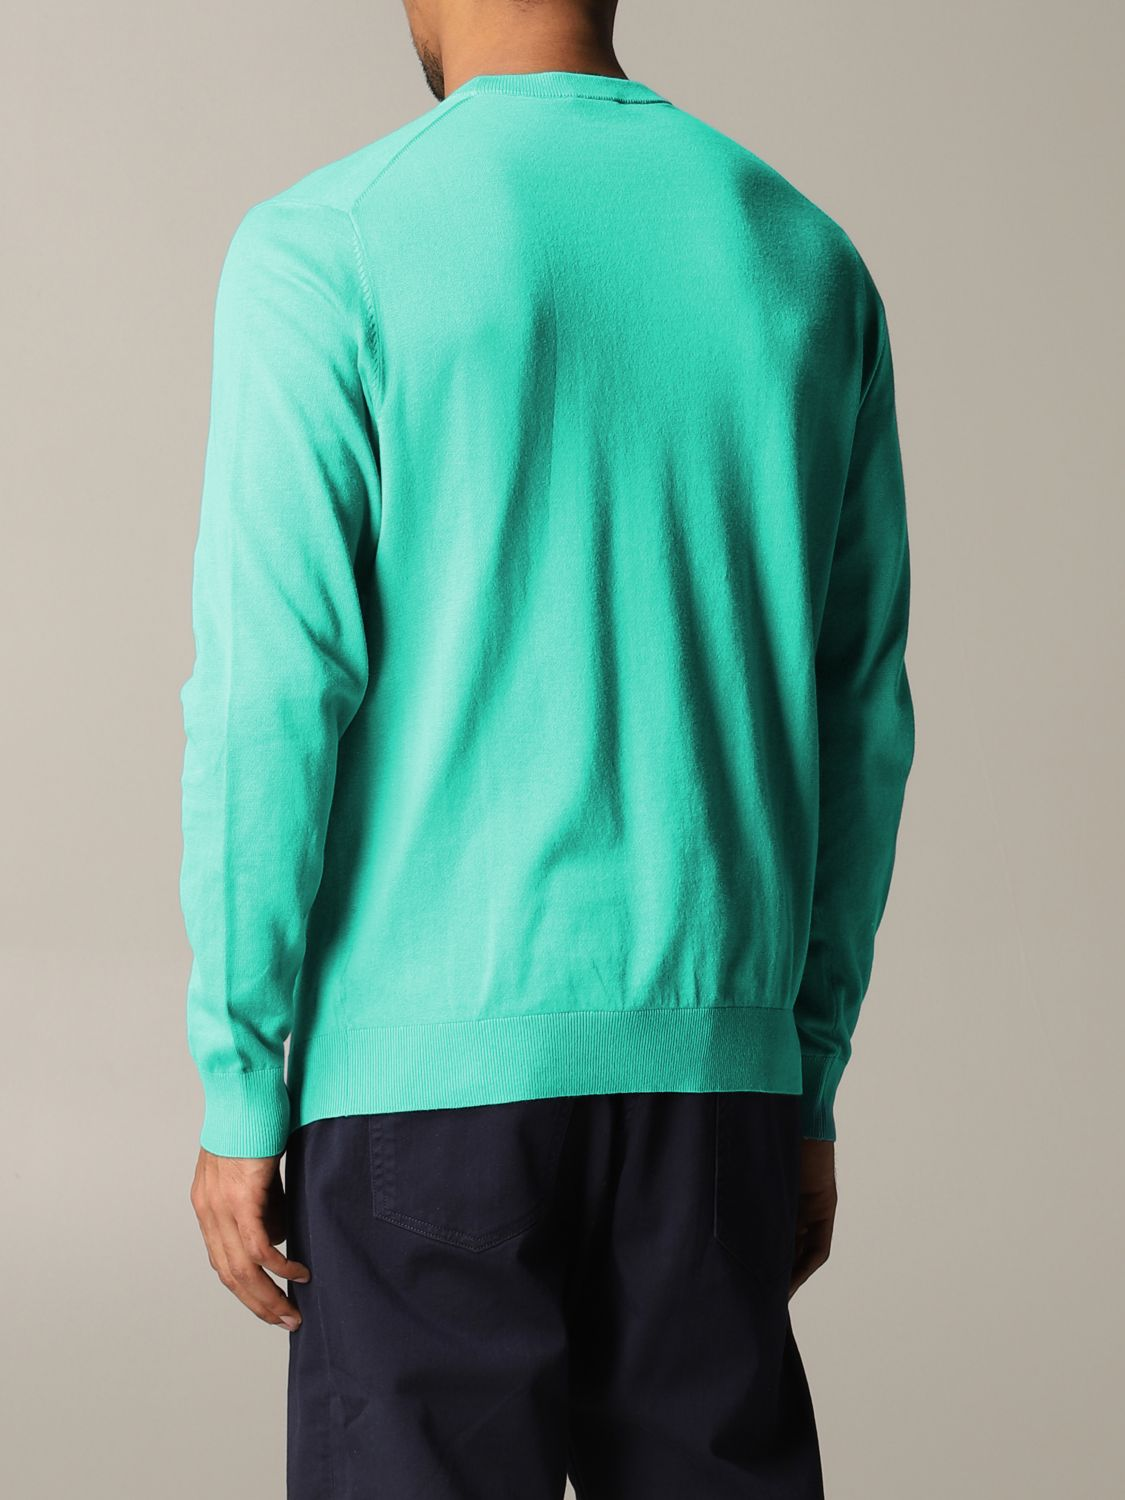 Jumper men Paul Smith London sea 3